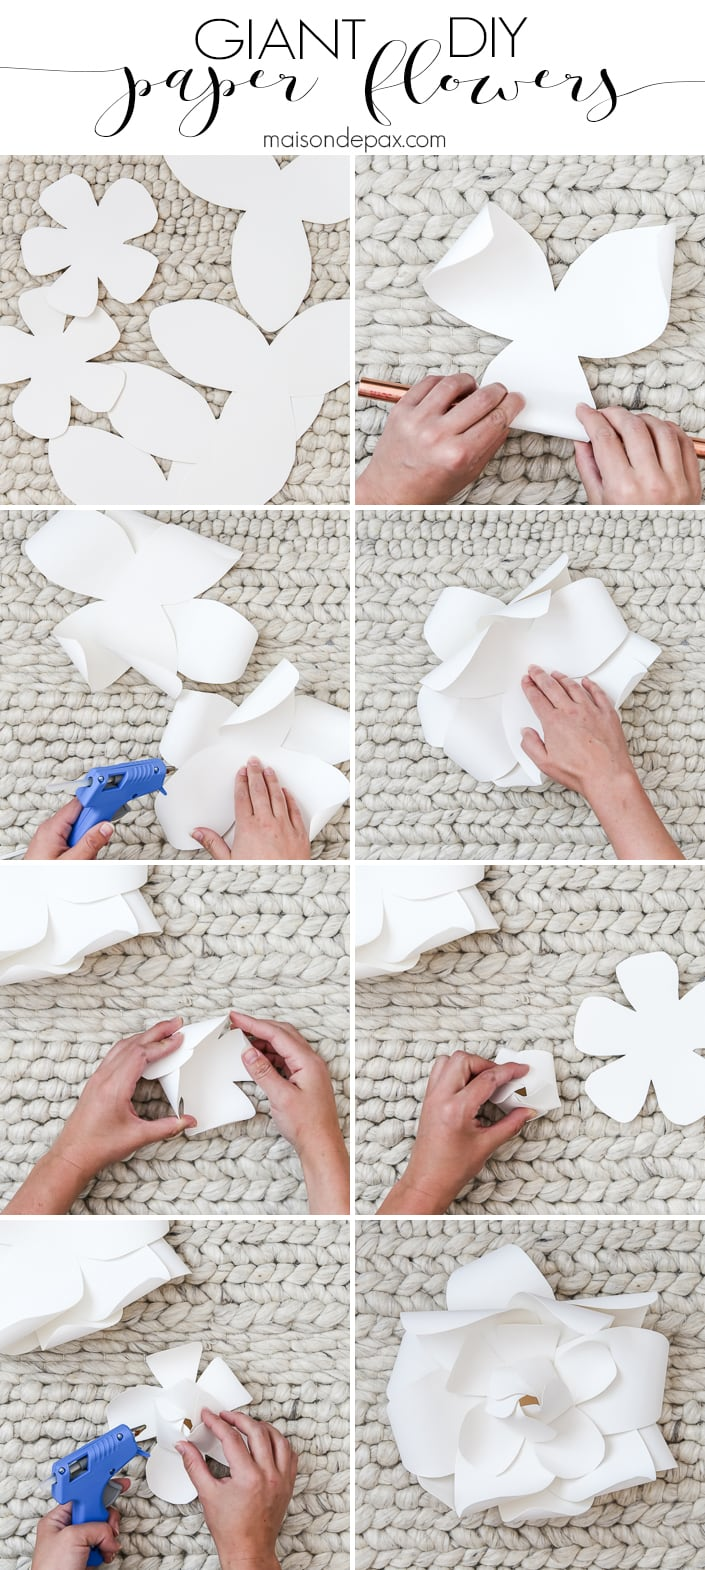 Diy giant paper flowers tutorial maison de pax giant diy paper flowers maison de pax mightylinksfo